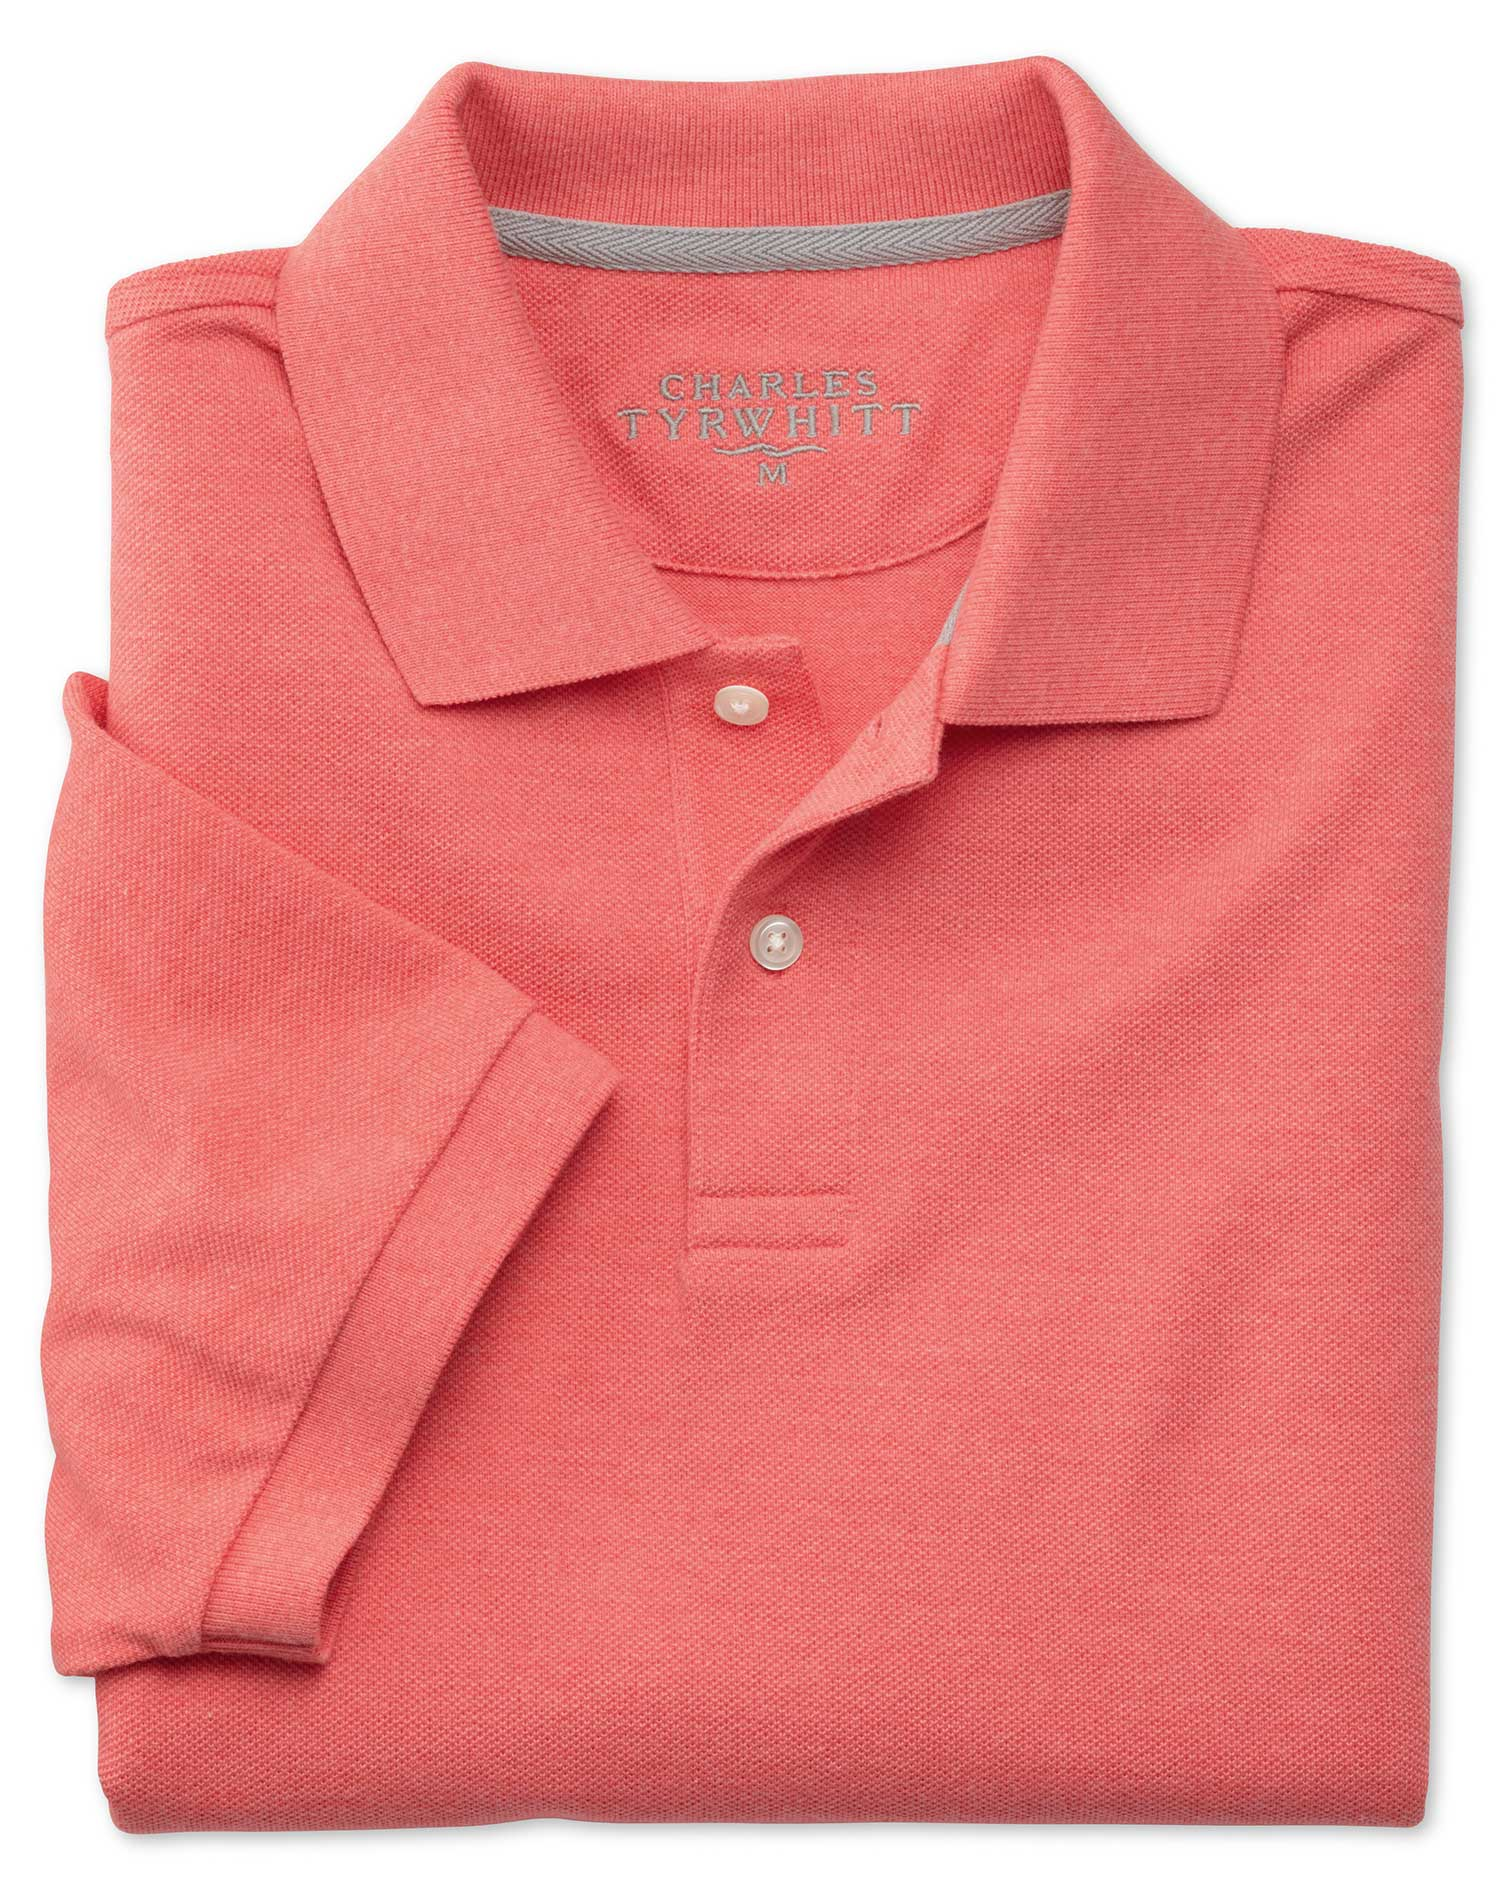 Coral Melange Pique Cotton Polo Size XXL by Charles Tyrwhitt